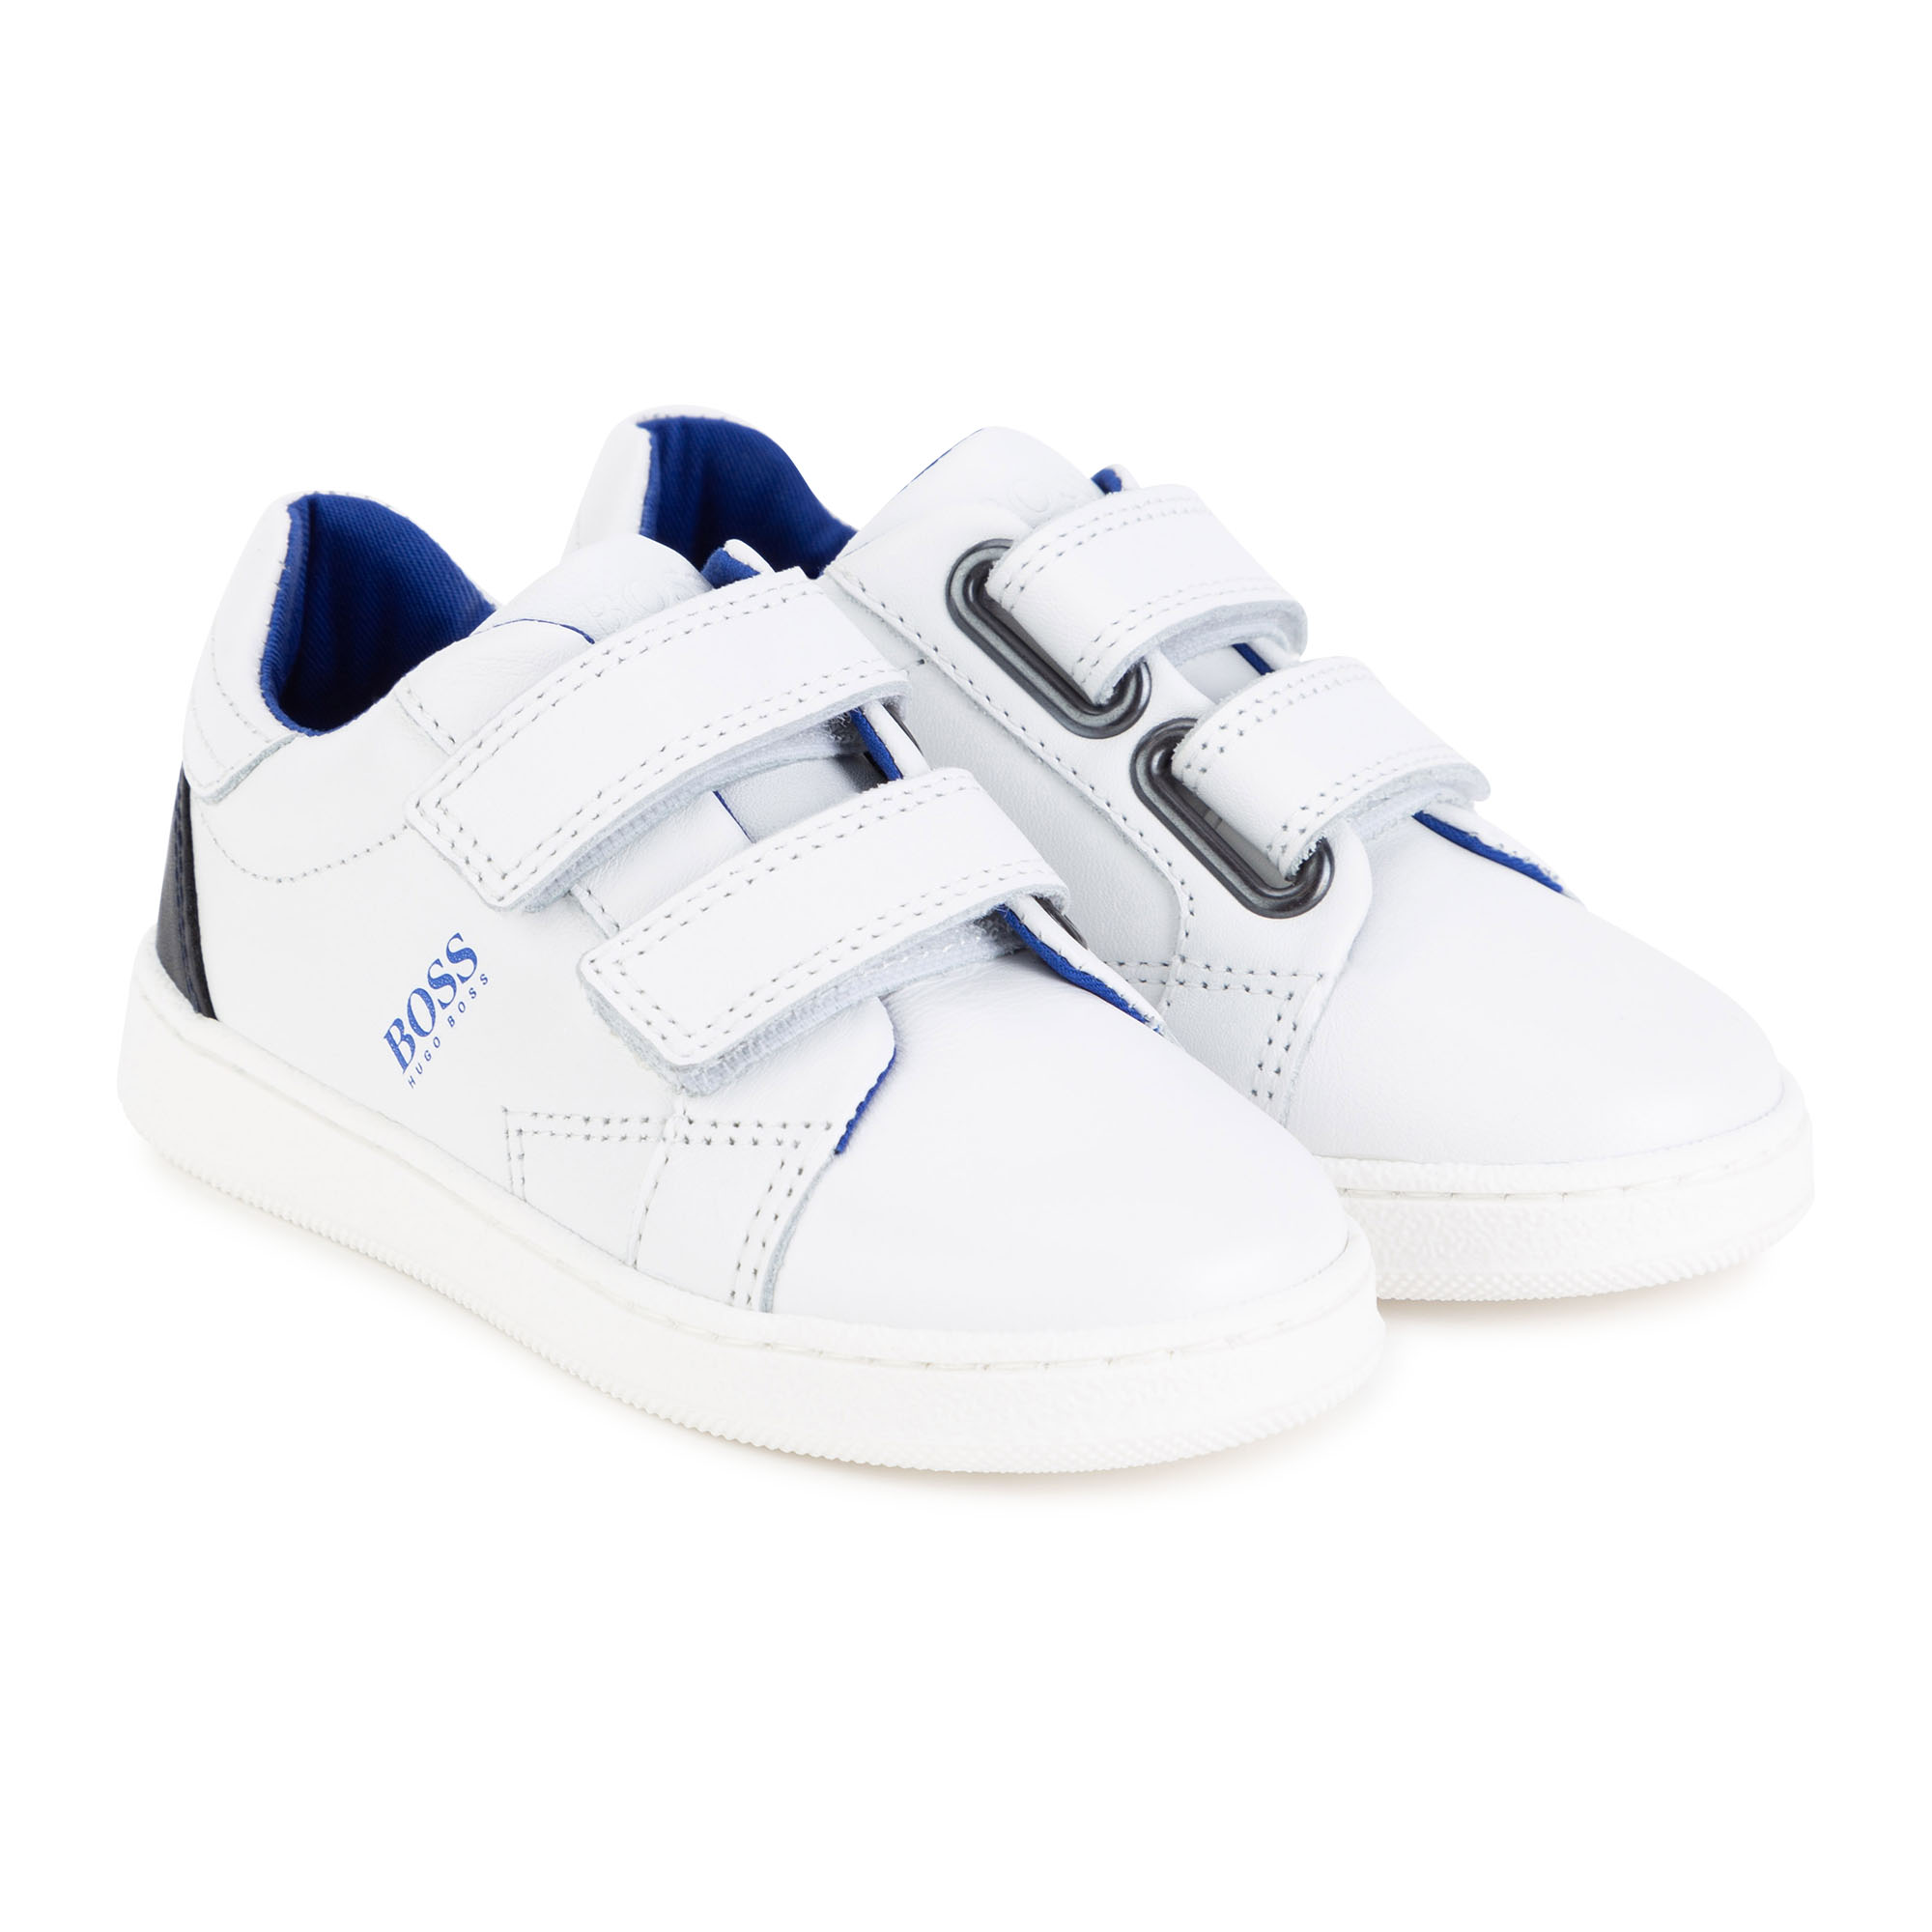 Hook-and-loop leather sneakers BOSS for BOY